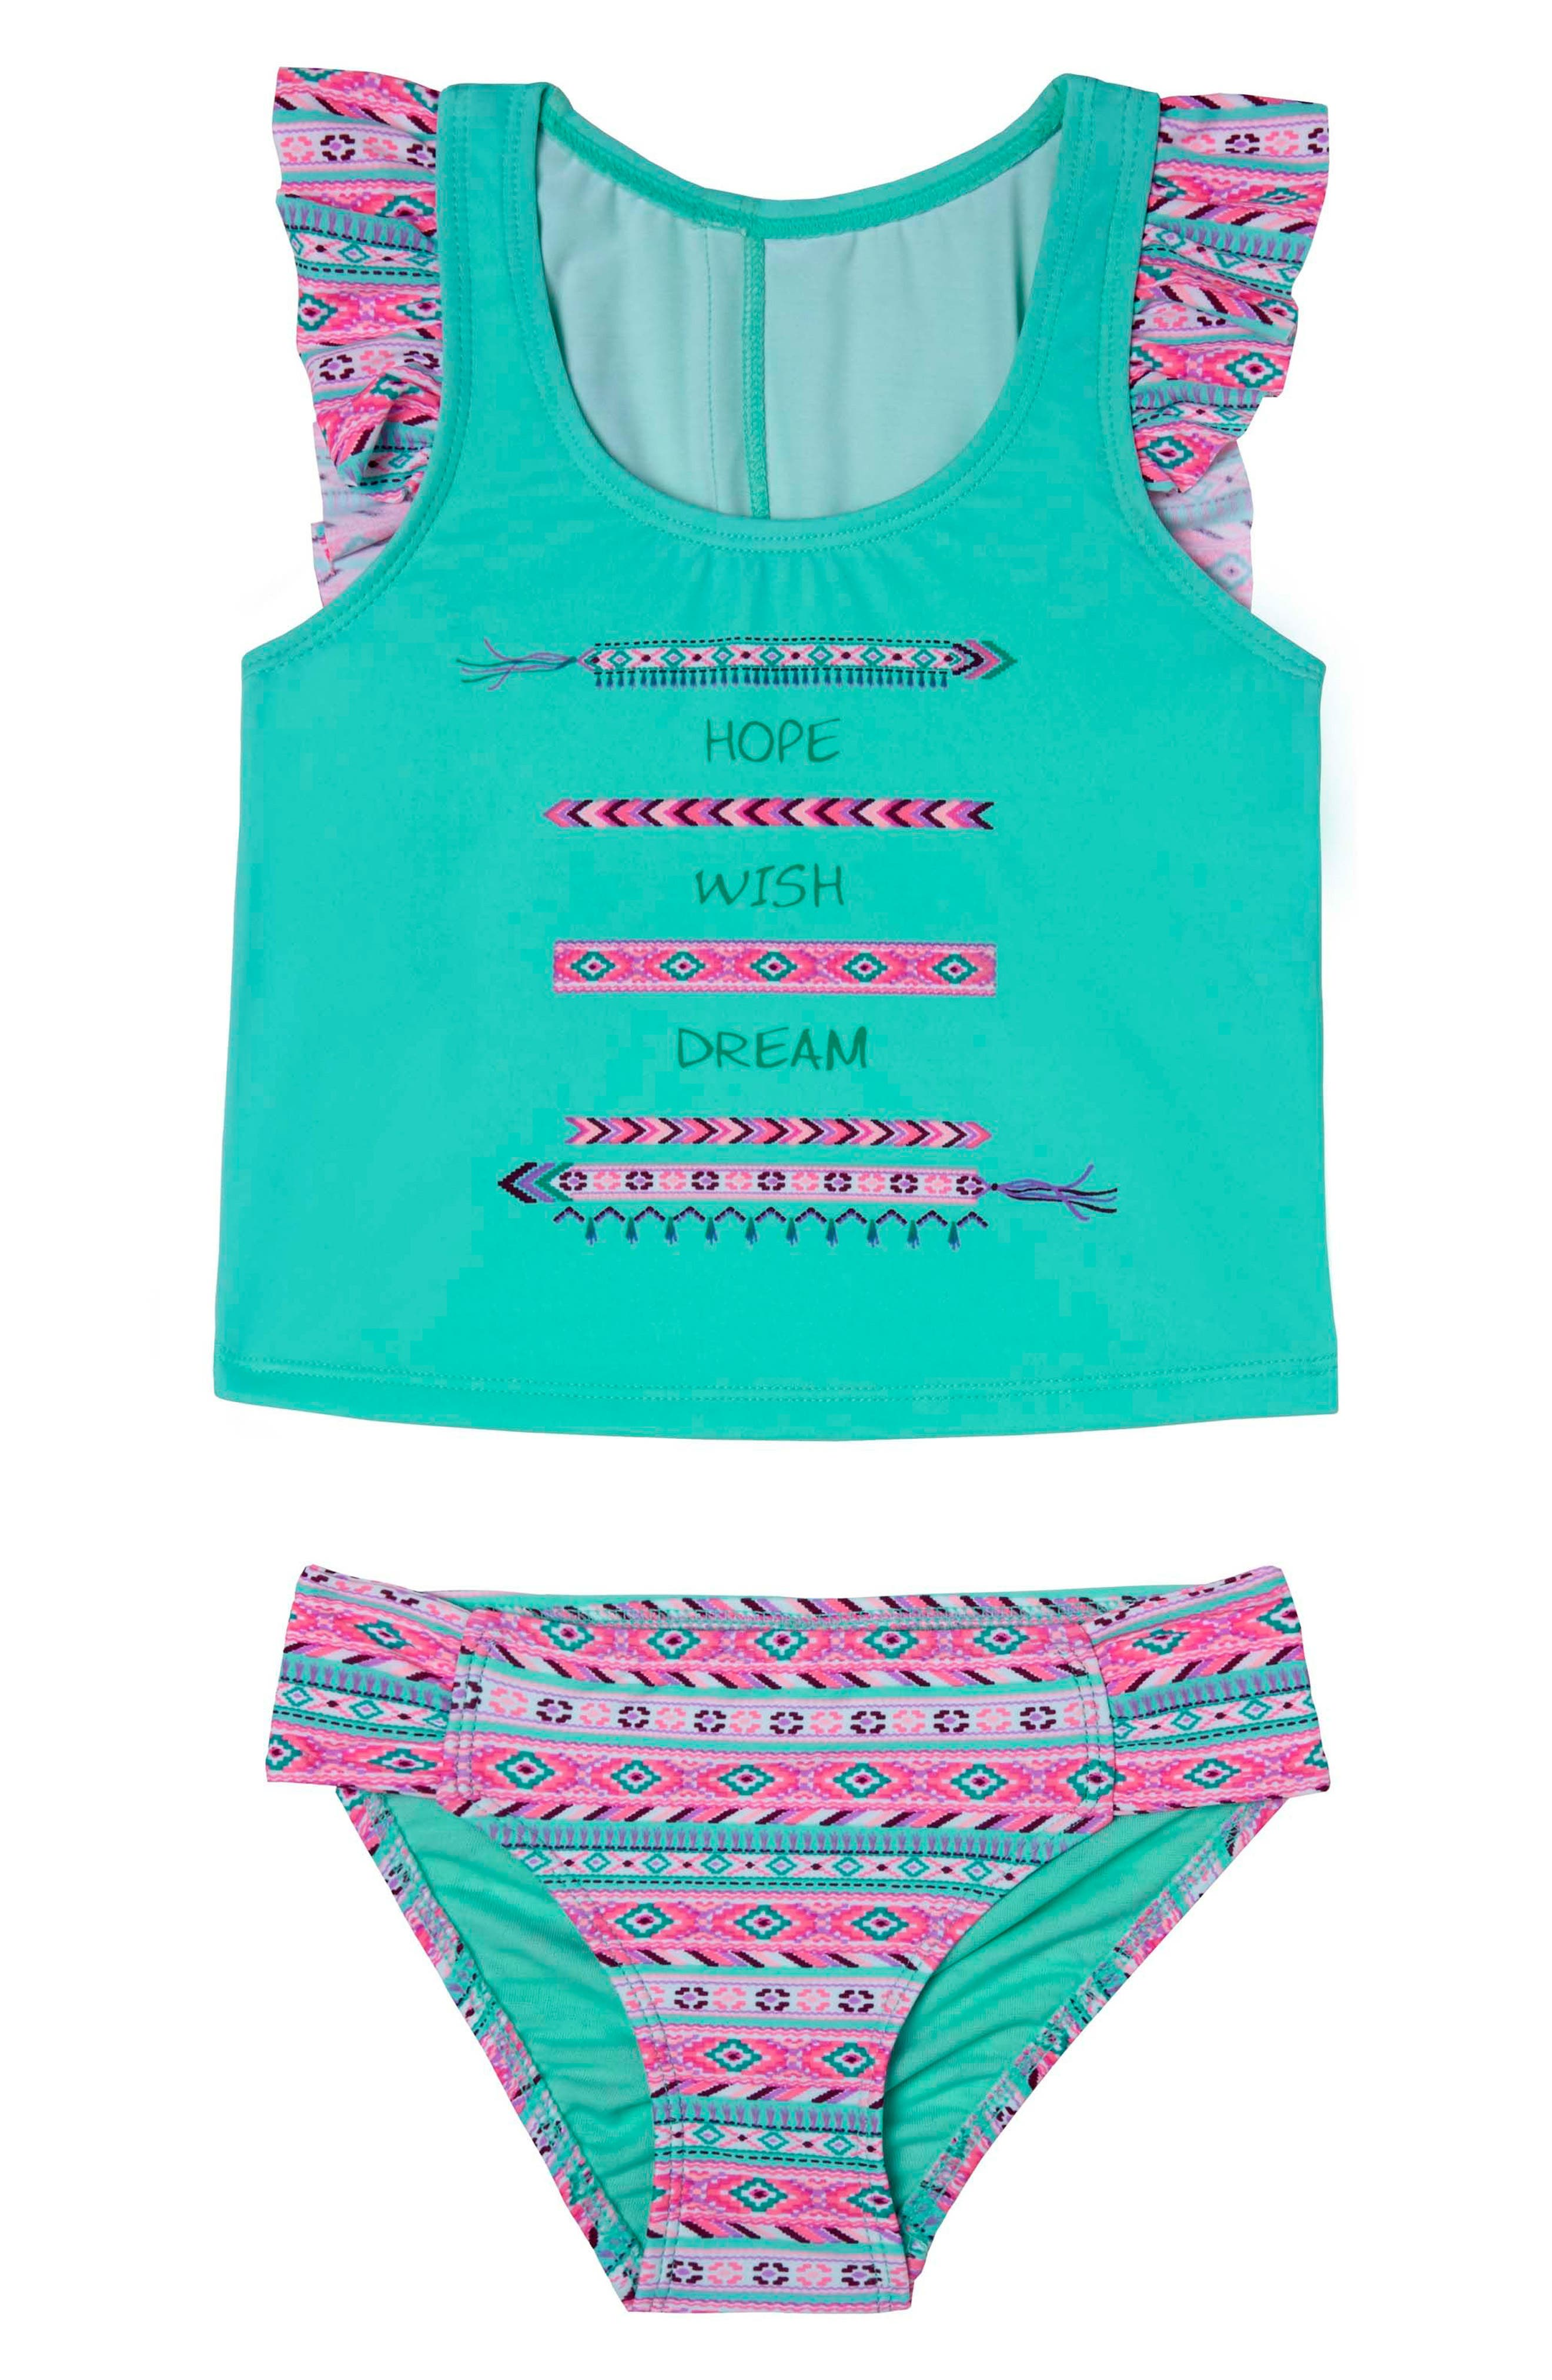 BFF - Hope, Wish & Dream Two-Piece Tankini Swimsuit,                         Main,                         color, Green